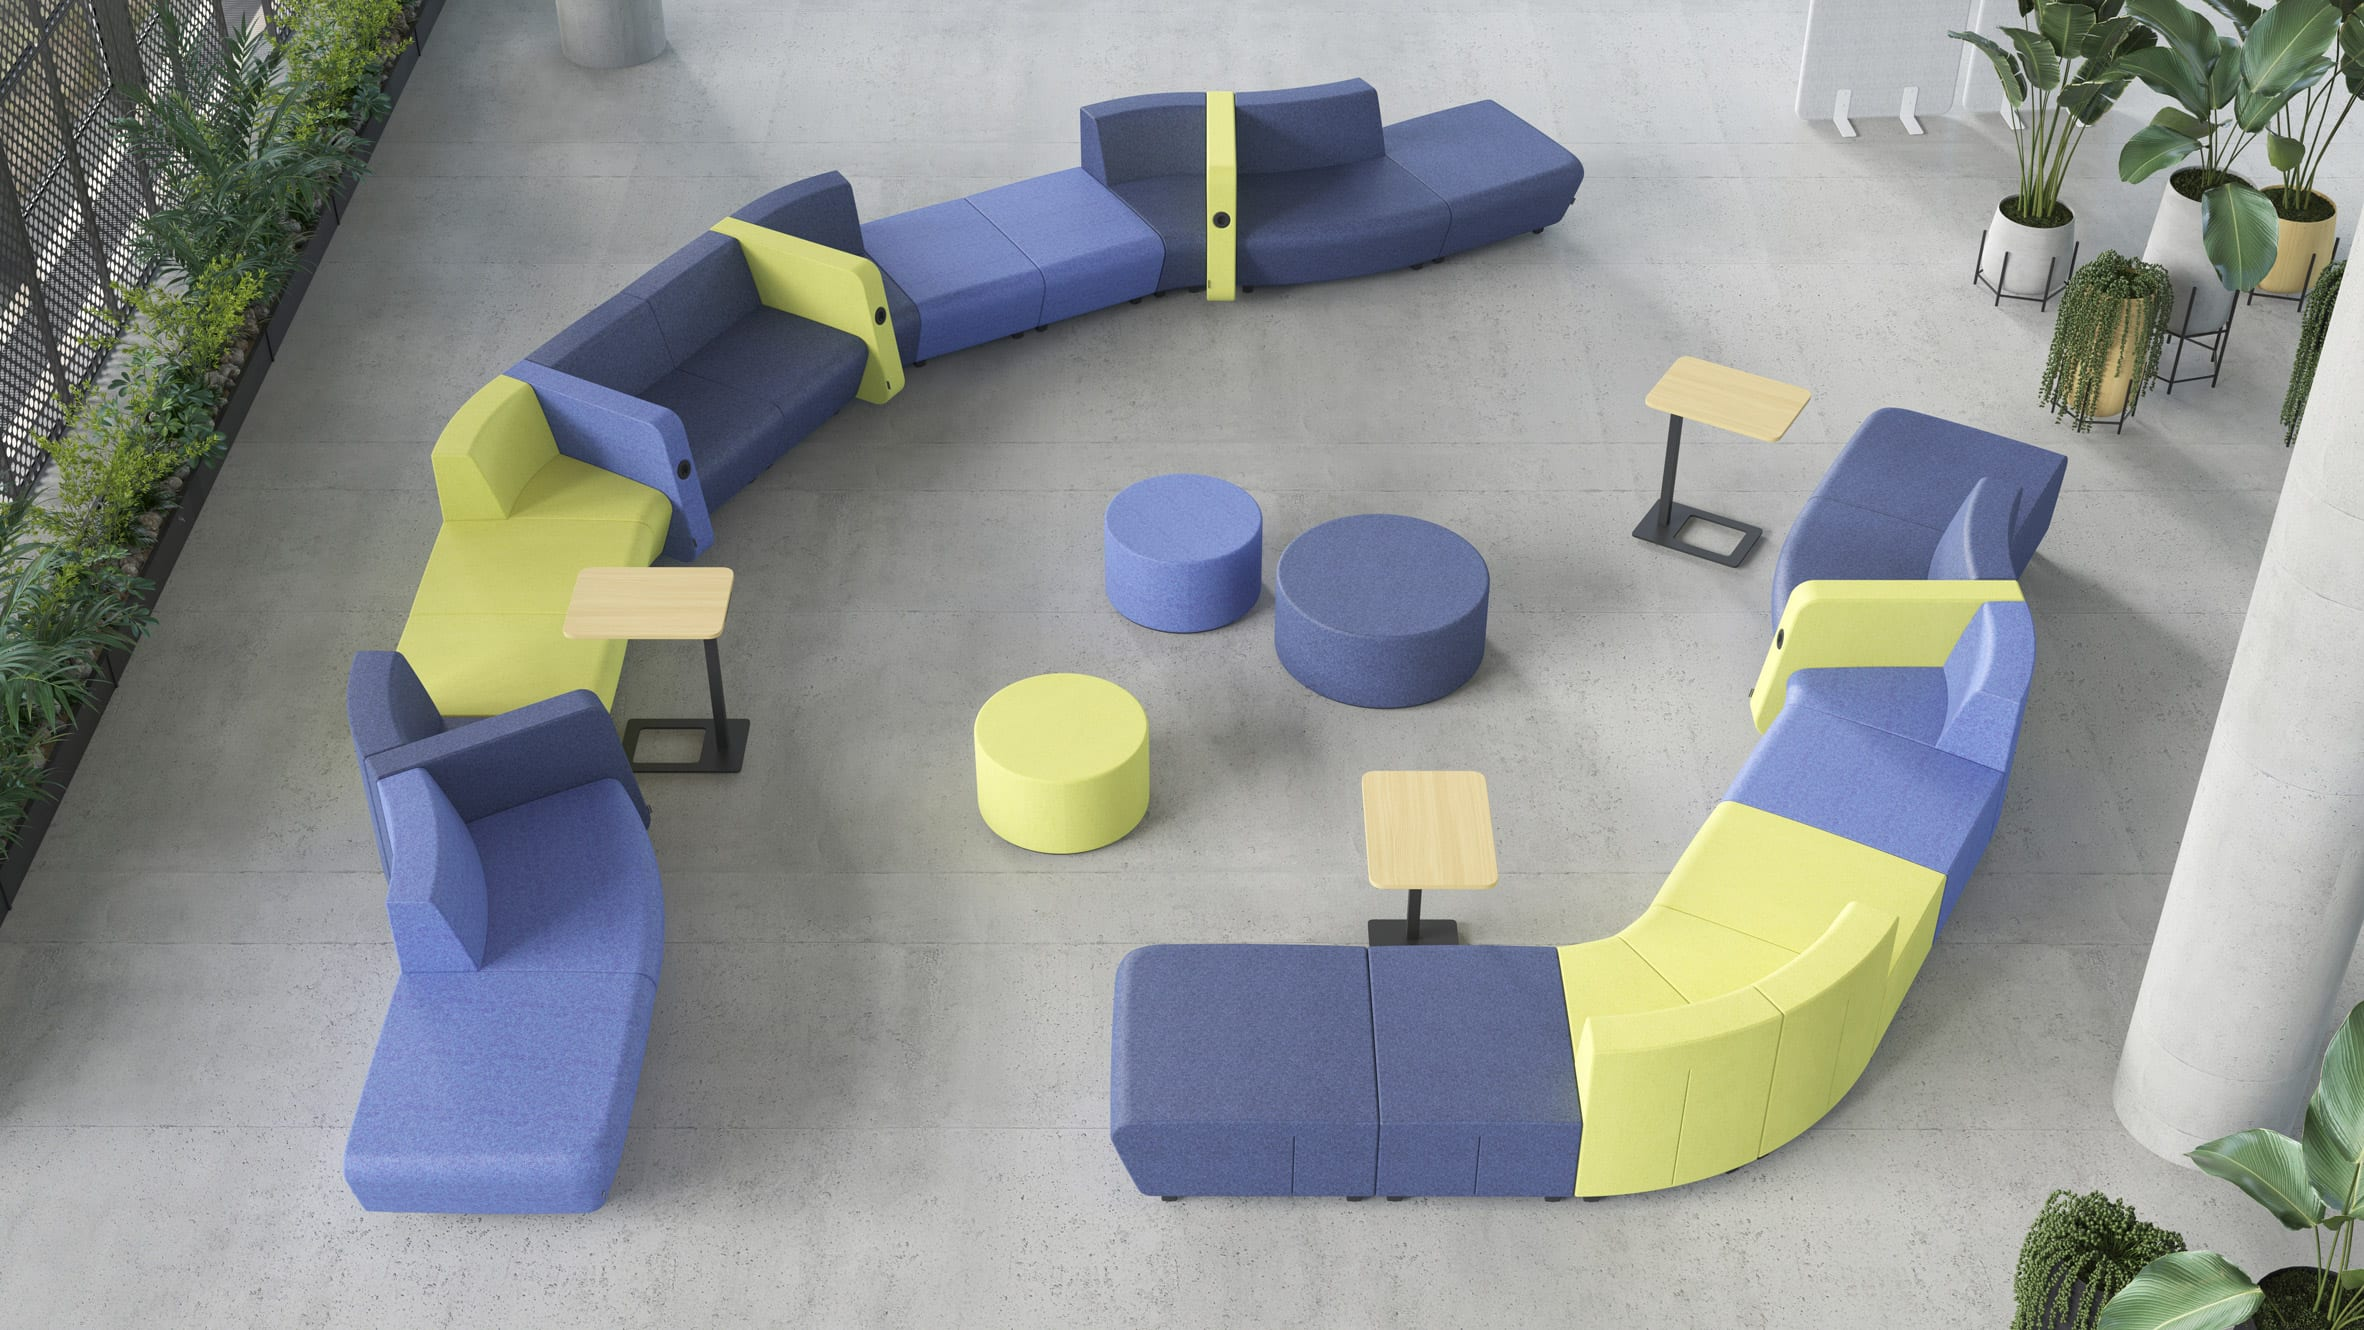 Elaborate arrangement of modular seating with screen dividers, side tables and in-built chargers